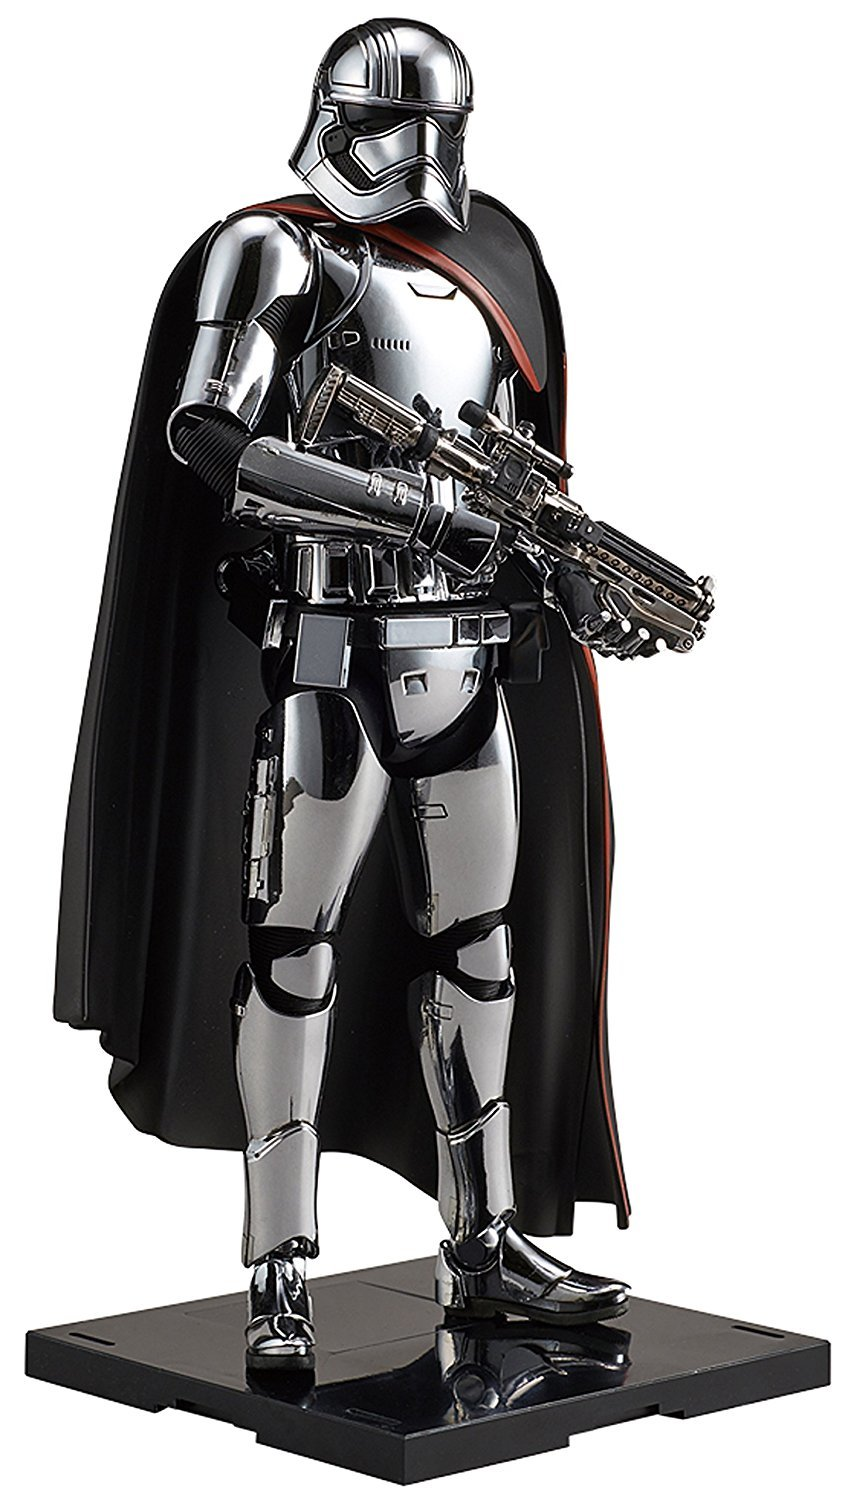 Star Wars 1/12 CAPTAIN PHASMA - Scale Model Kit image